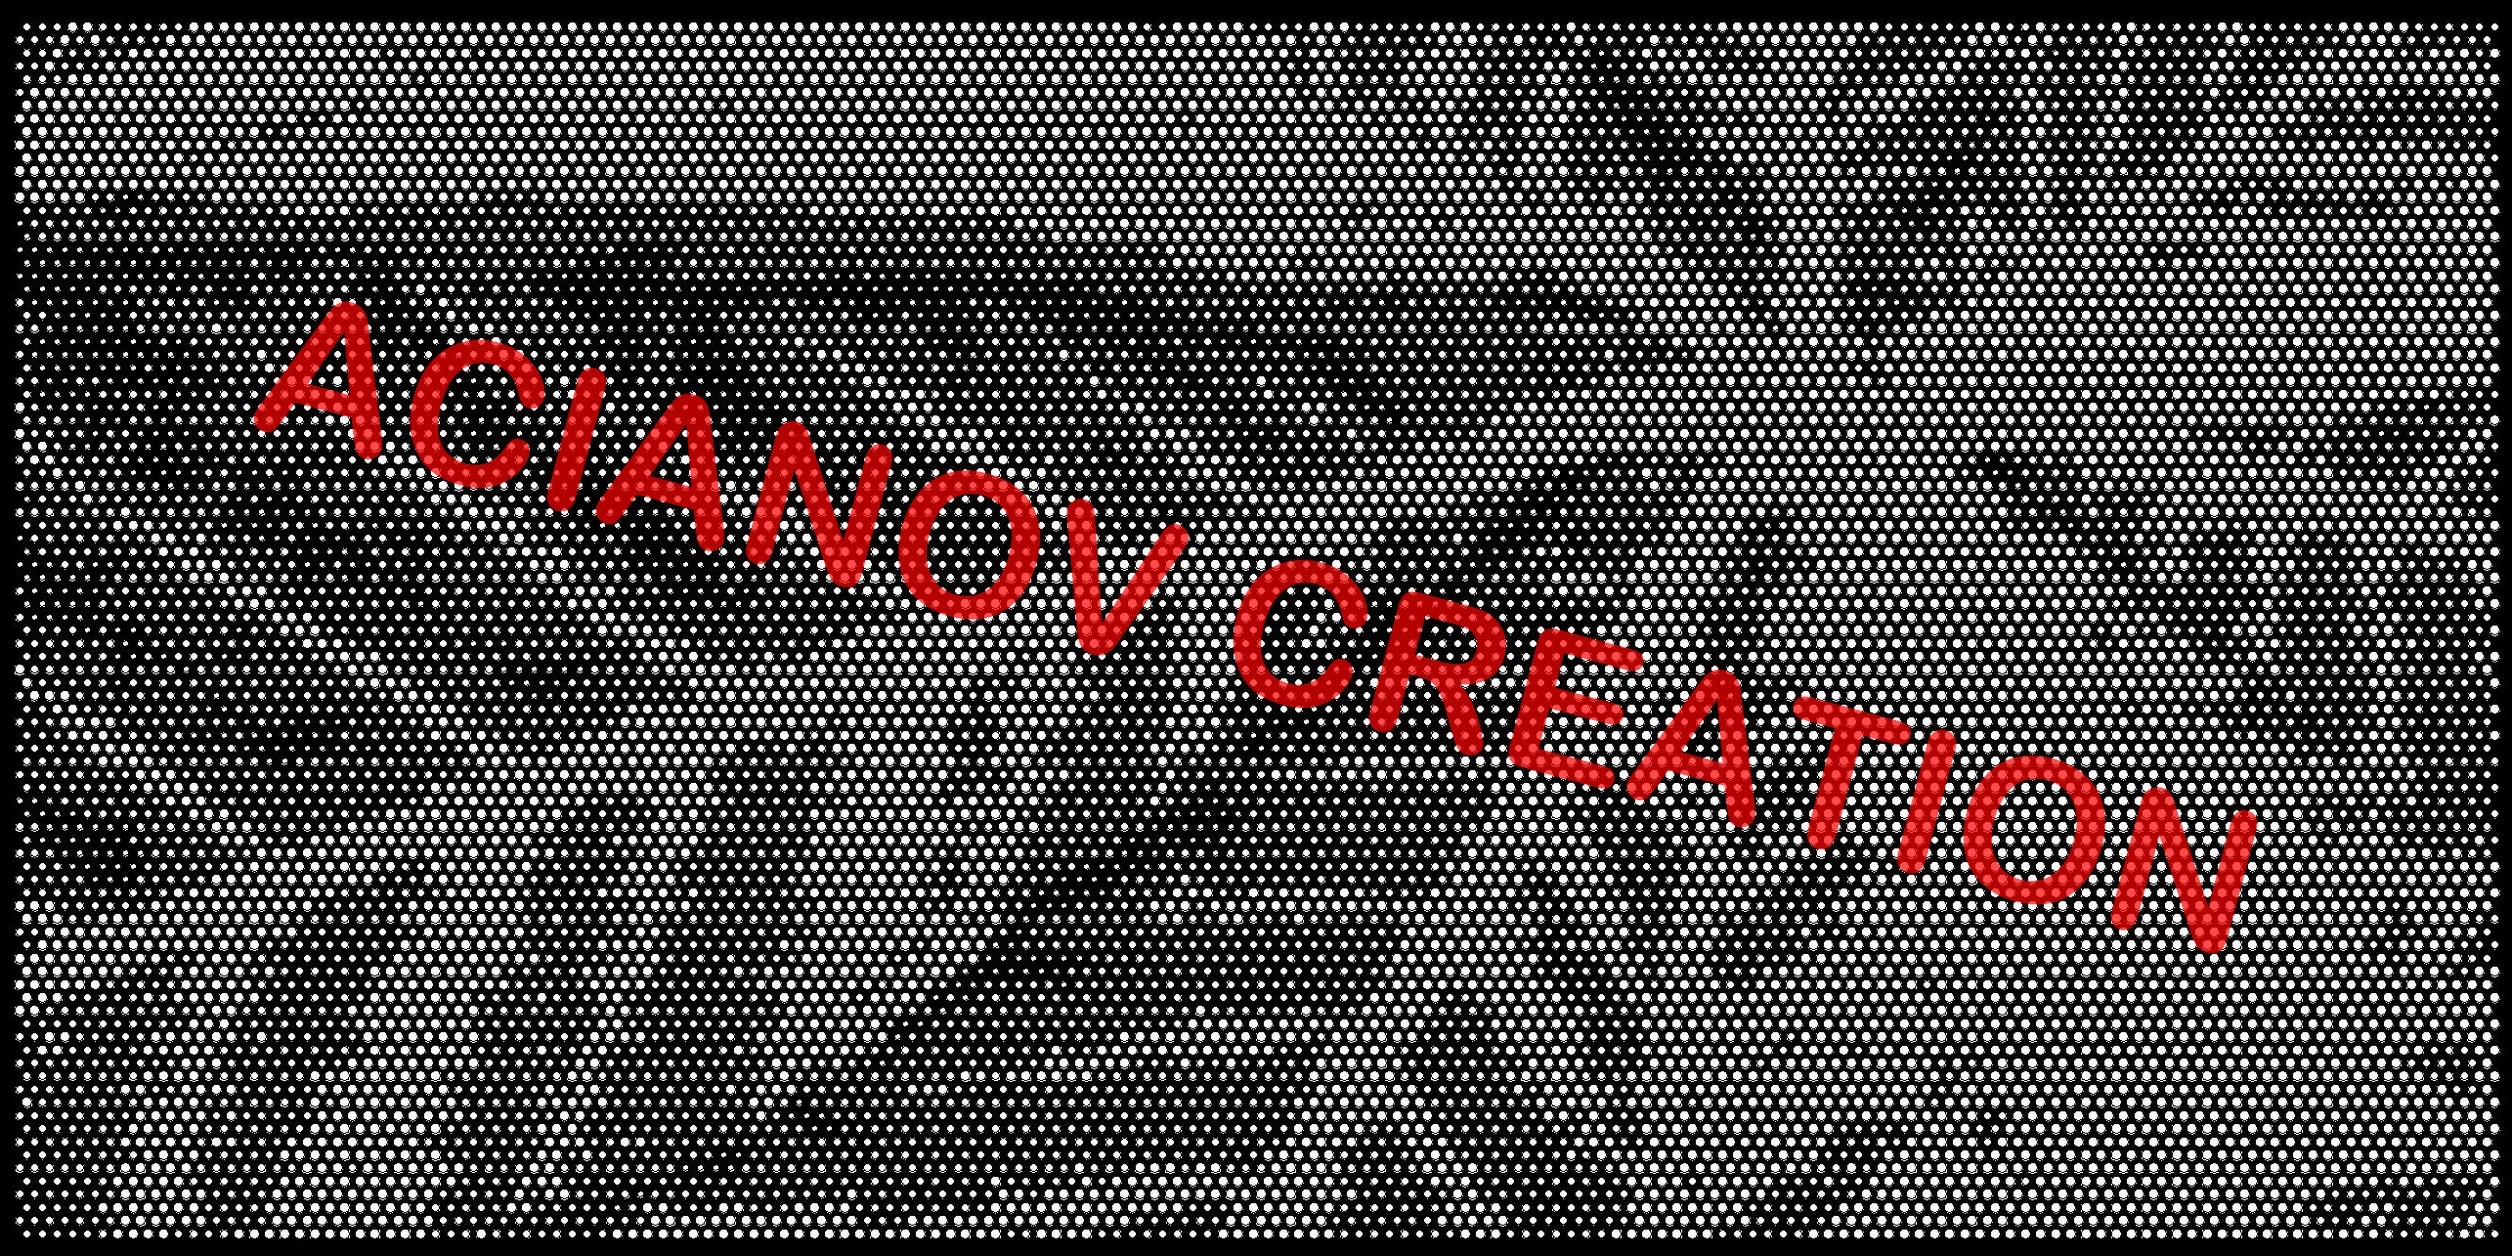 green acianov creation logo